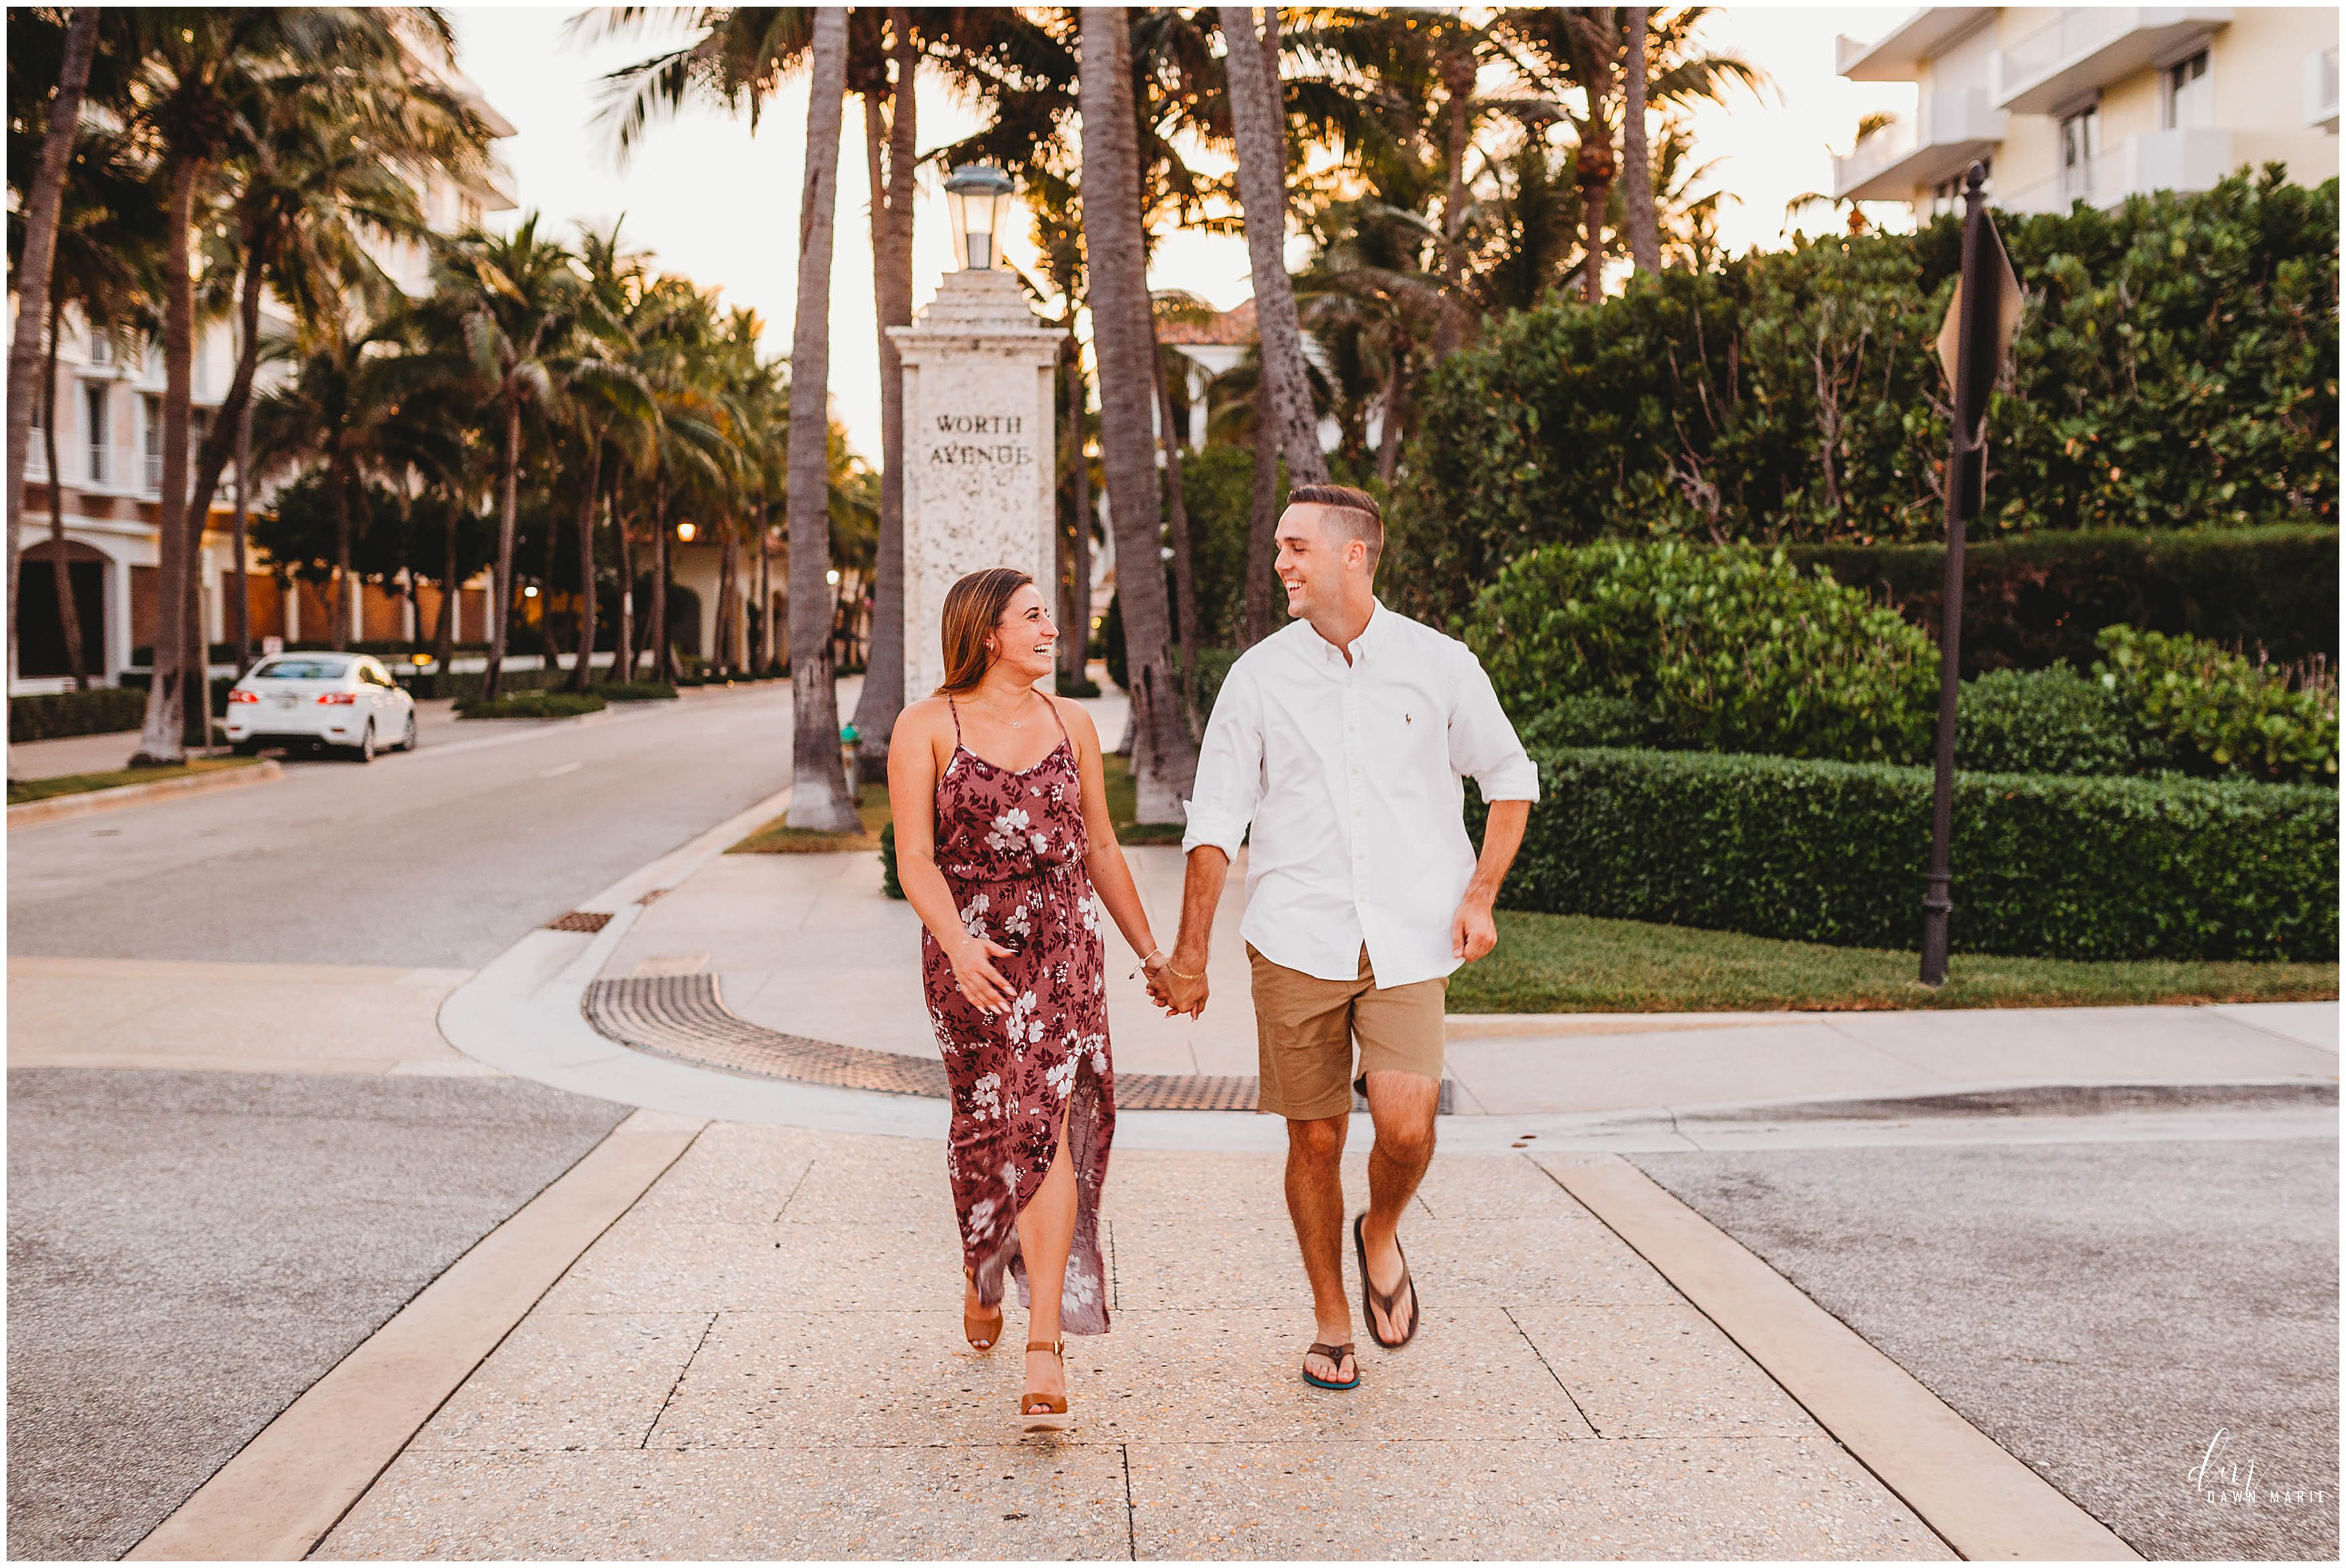 South florida Engagement Photography, South florida Engagement Photographer, South florida Engagement Photos, FL engagement Photographer, Palm Beach FL Engagement Photographer, engagement locations in South florida, engagement photography, engagement photography inspiration, engagement photos, Palm Beach Island Florida engagement photography, Palm Beach Engagement Photographer, Worth Avenue Engagement Photos, Worth Avenue Palm Beach, Worth Ave Palm Beach Engagement, worth avenue engagement